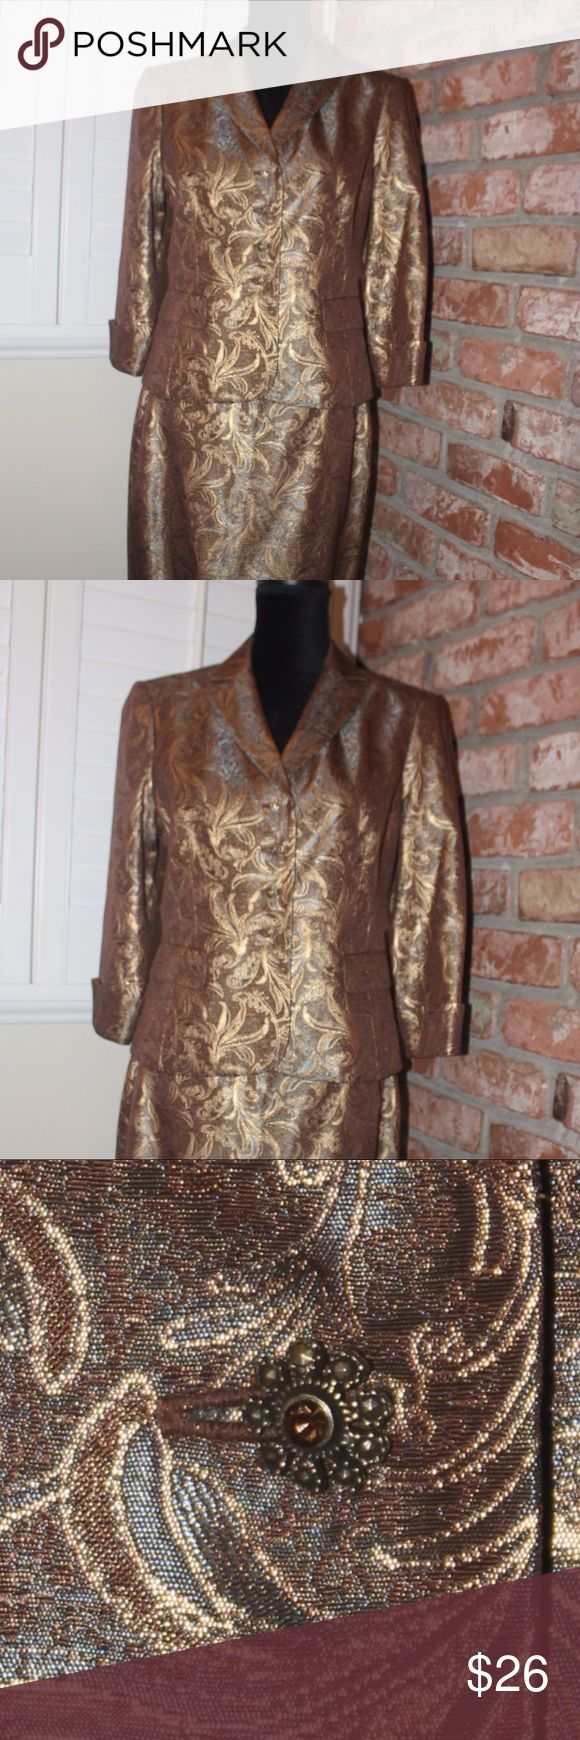 Classy Gold Two-Piece Gold with turquoise highlights - brocade type material (94% Acetate/6% Metallic) - Beautiful! It has beautiful buttons, small shoulder pads, and although she looks stiff in the pics, once you put her on and get moving, she will form to your curves and look fabulous! Great condition - happy to answer any questions! Jones New York Skirts Midi